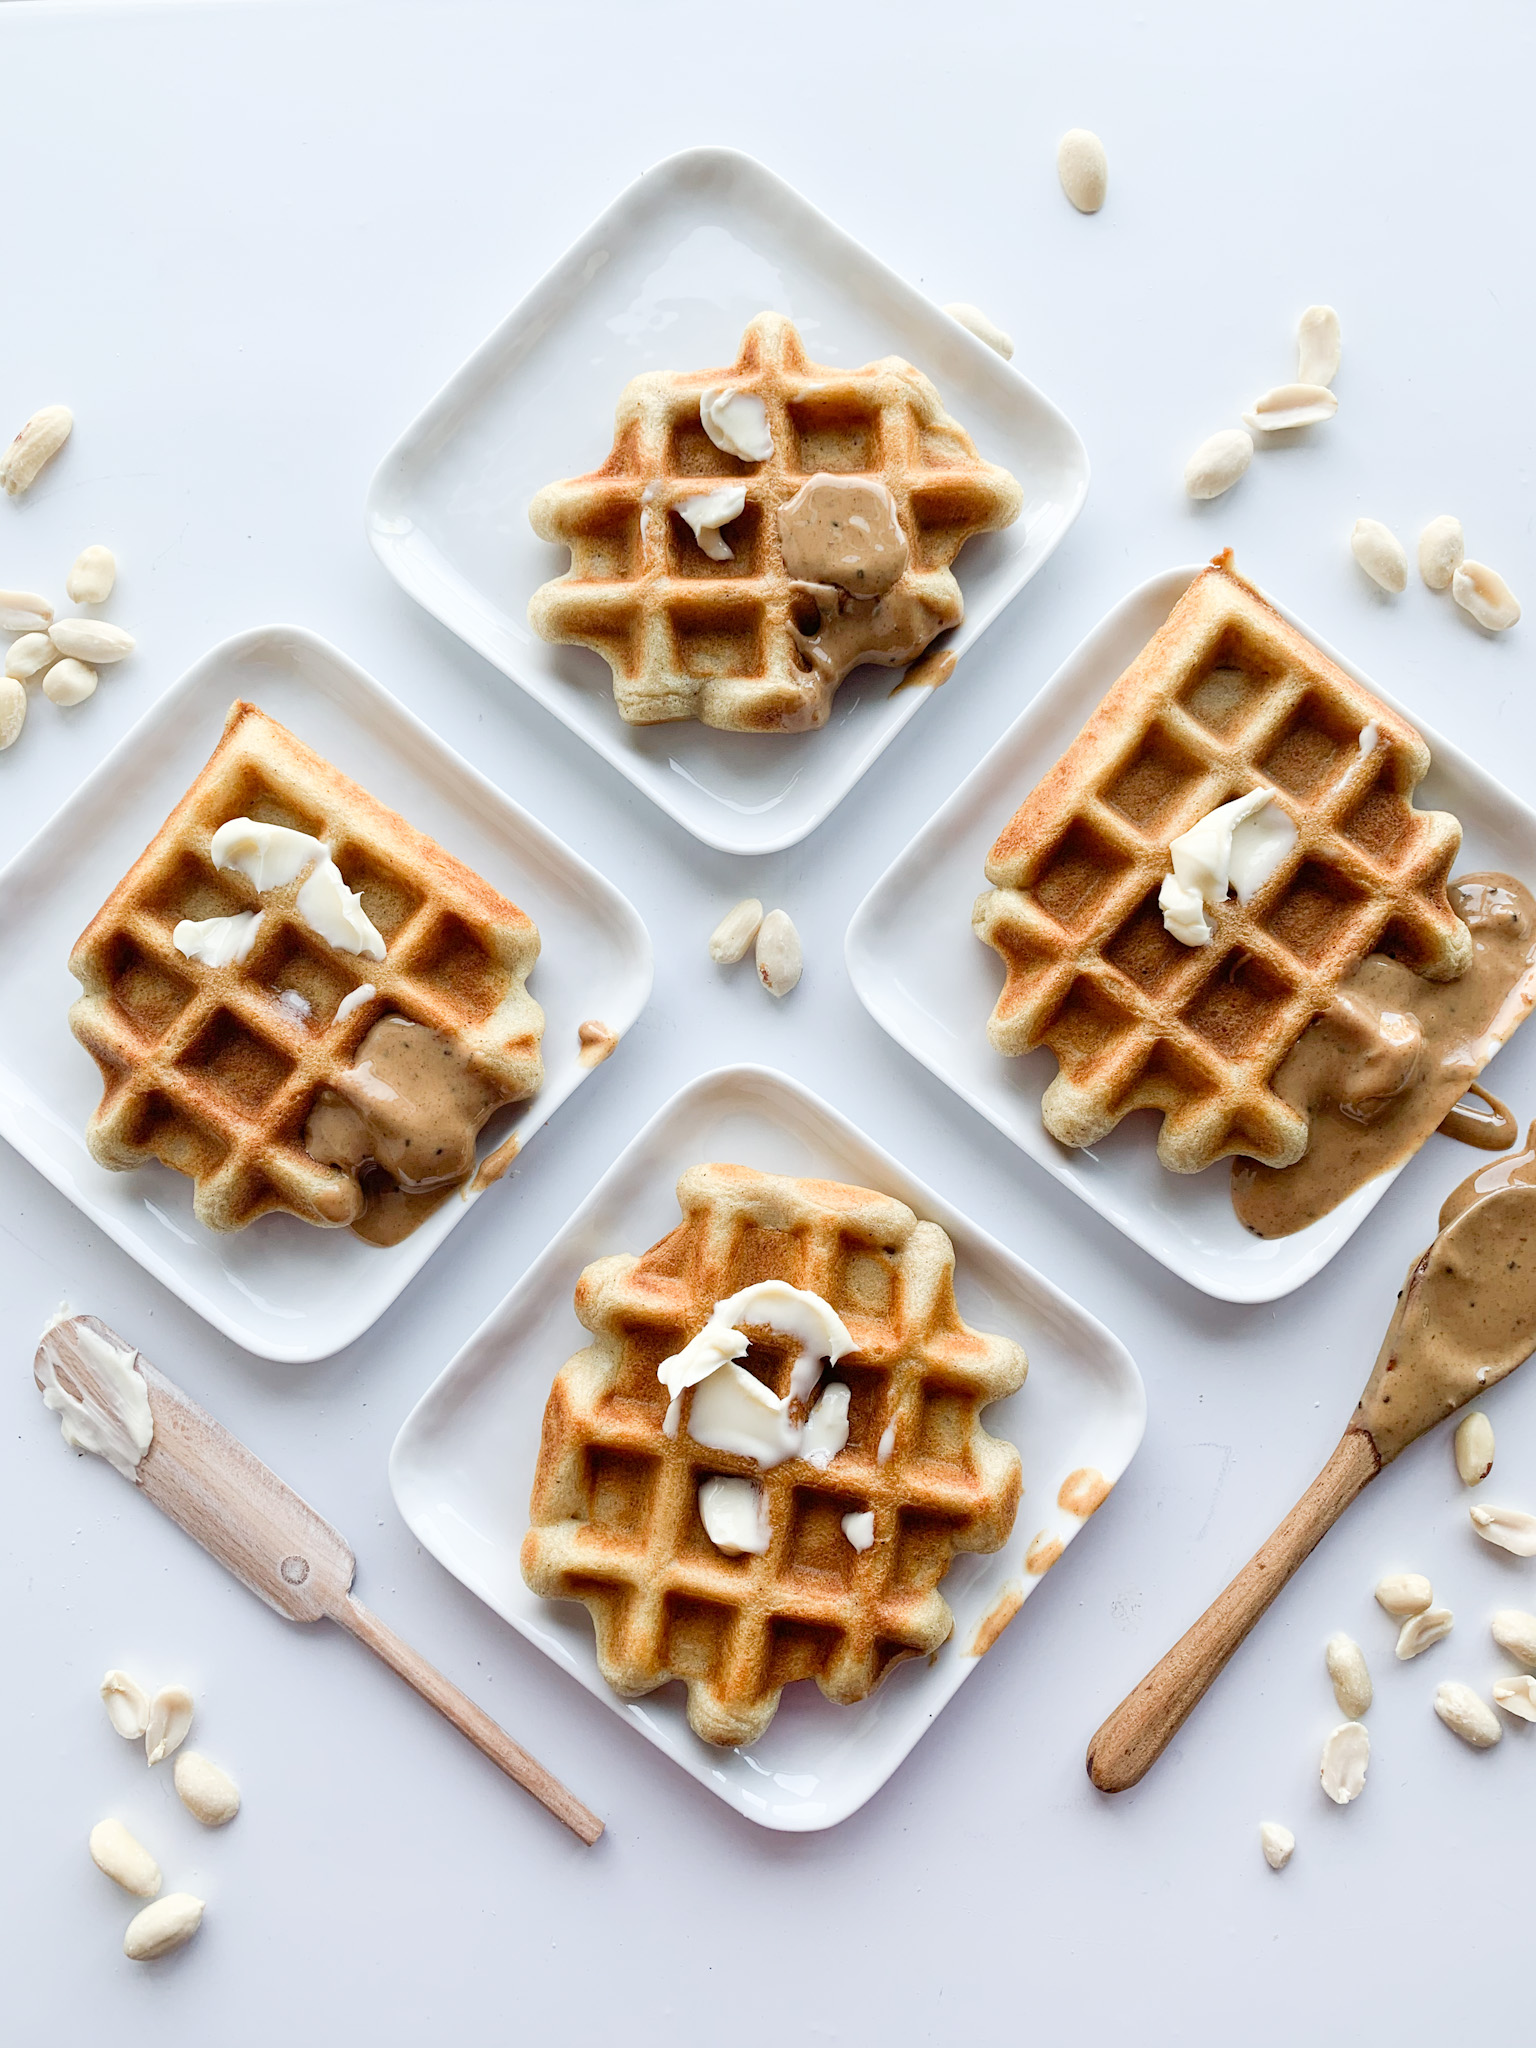 Gluten And Dairy-Free Waffles